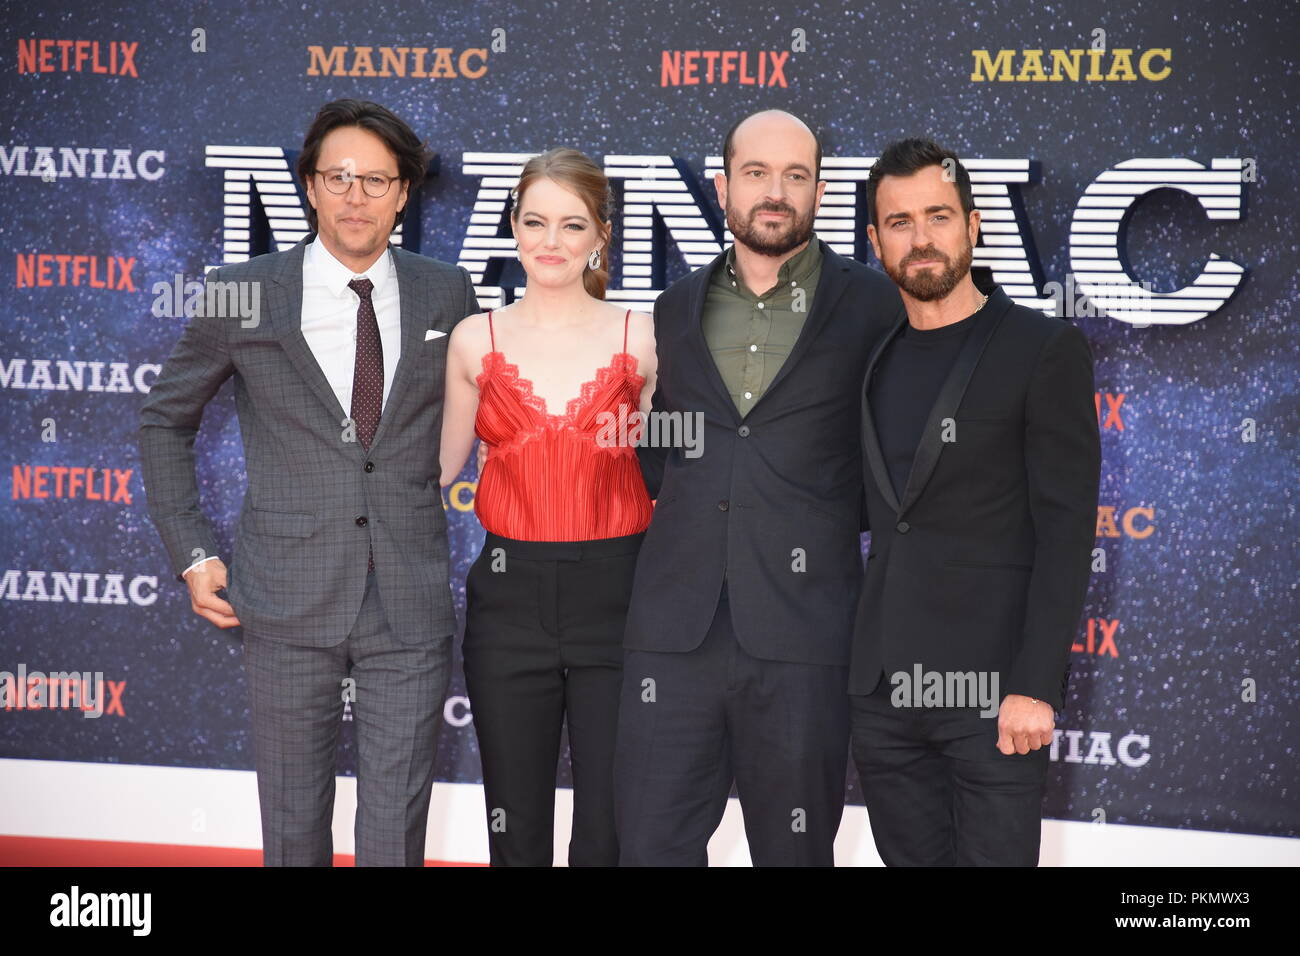 London, UK. 13th September 2018. Cary Fukunaga,Emma Stone,Patrick Somerville,Justin Theroux,'Maniac'Netflix TV Premiere,Queen Elizabeth Hall,Southbank,London.UK Credit: michael melia/Alamy Live News - Stock Image